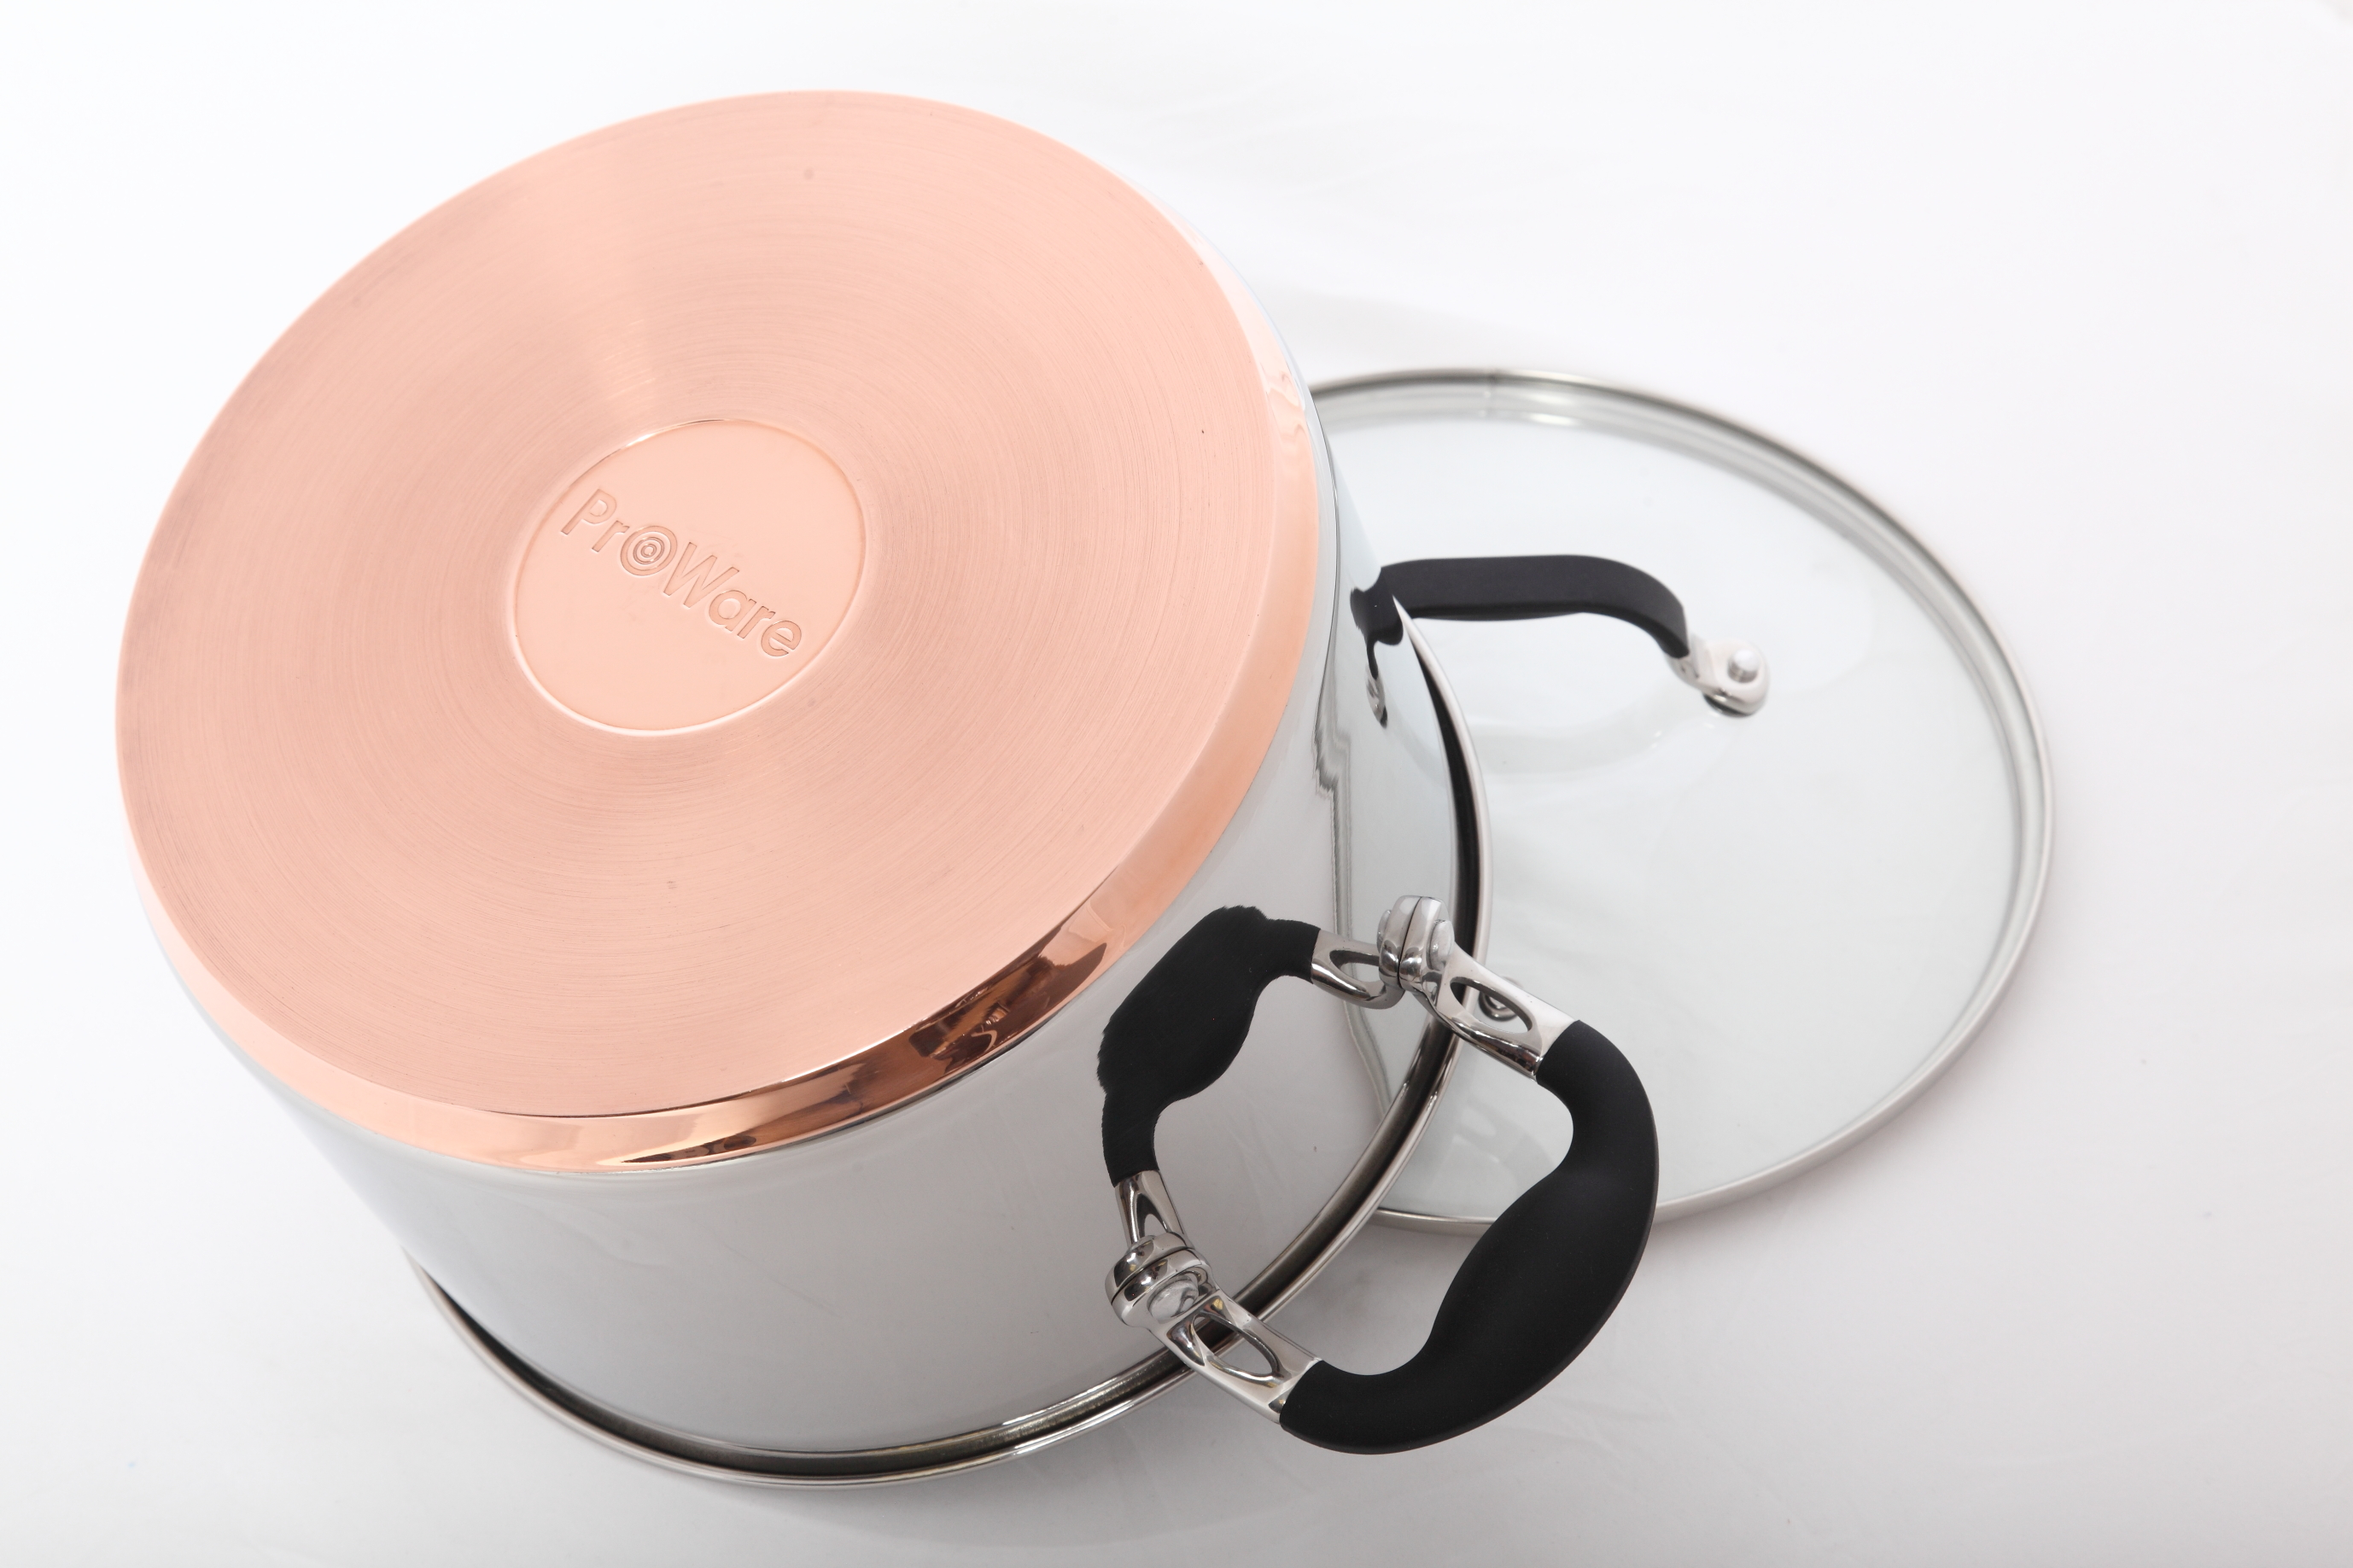 ProWare Copper Base Stockpot